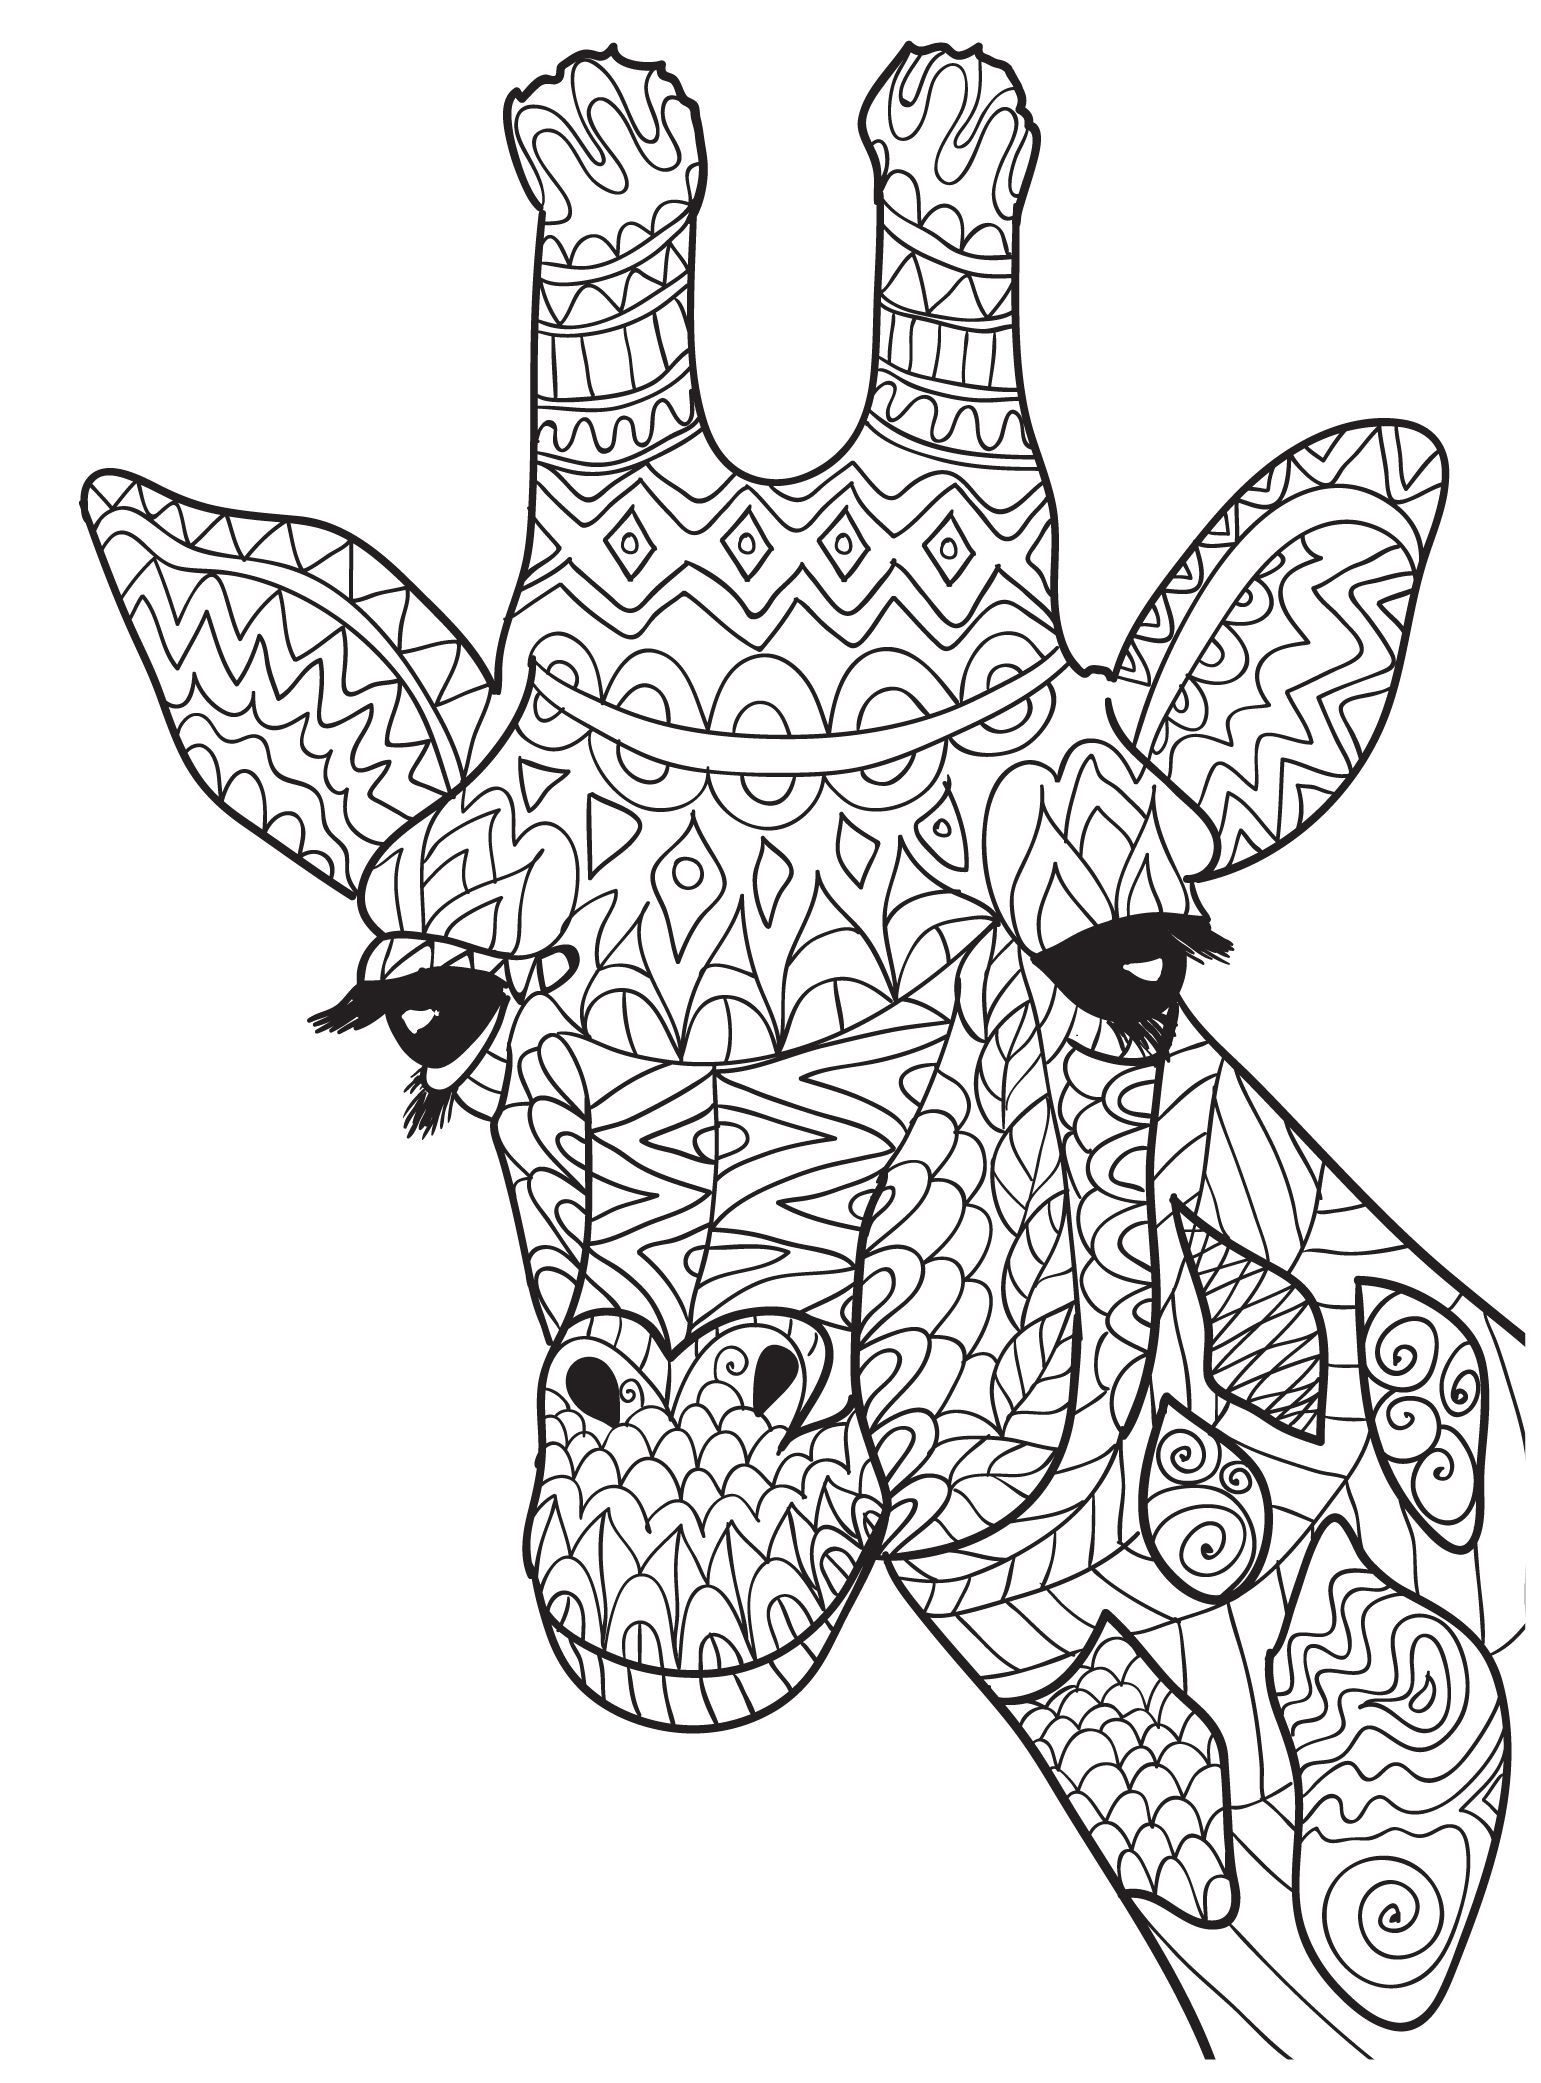 Ten Adult Coloring Pictures For People Who Love April The ... | printable colouring pages for adults animals